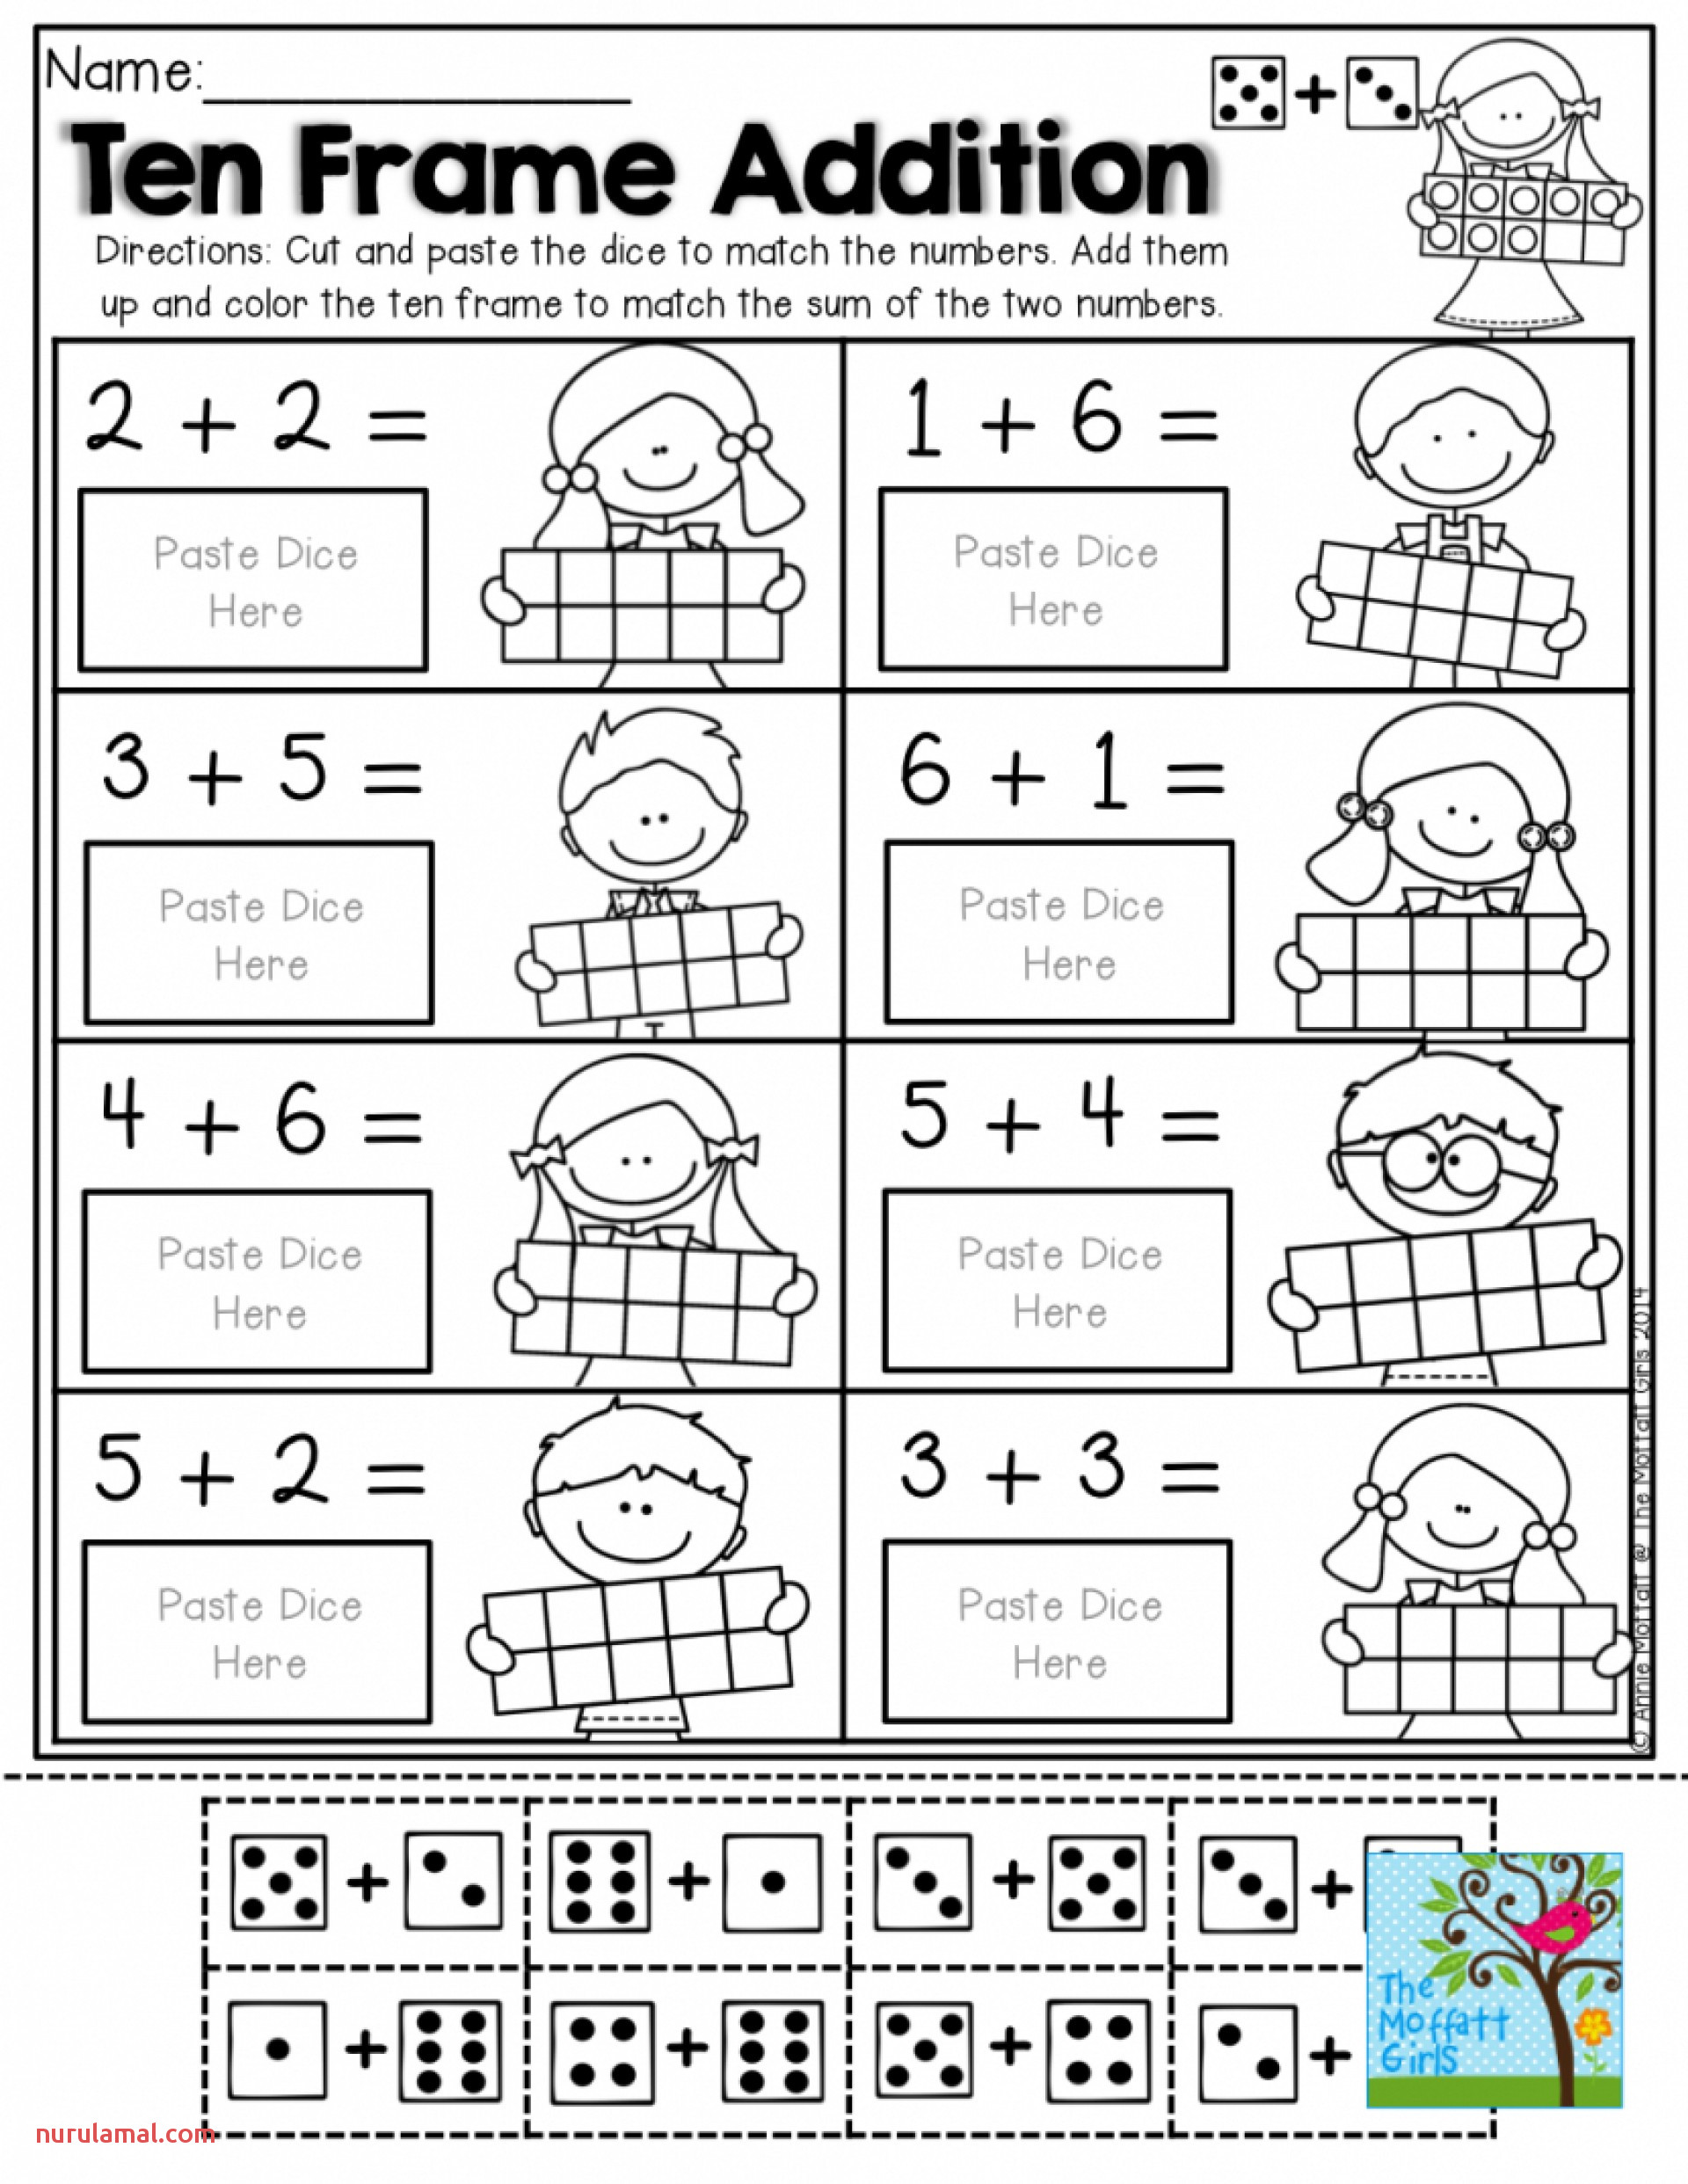 A And An Worksheets Free Printable 1st 001